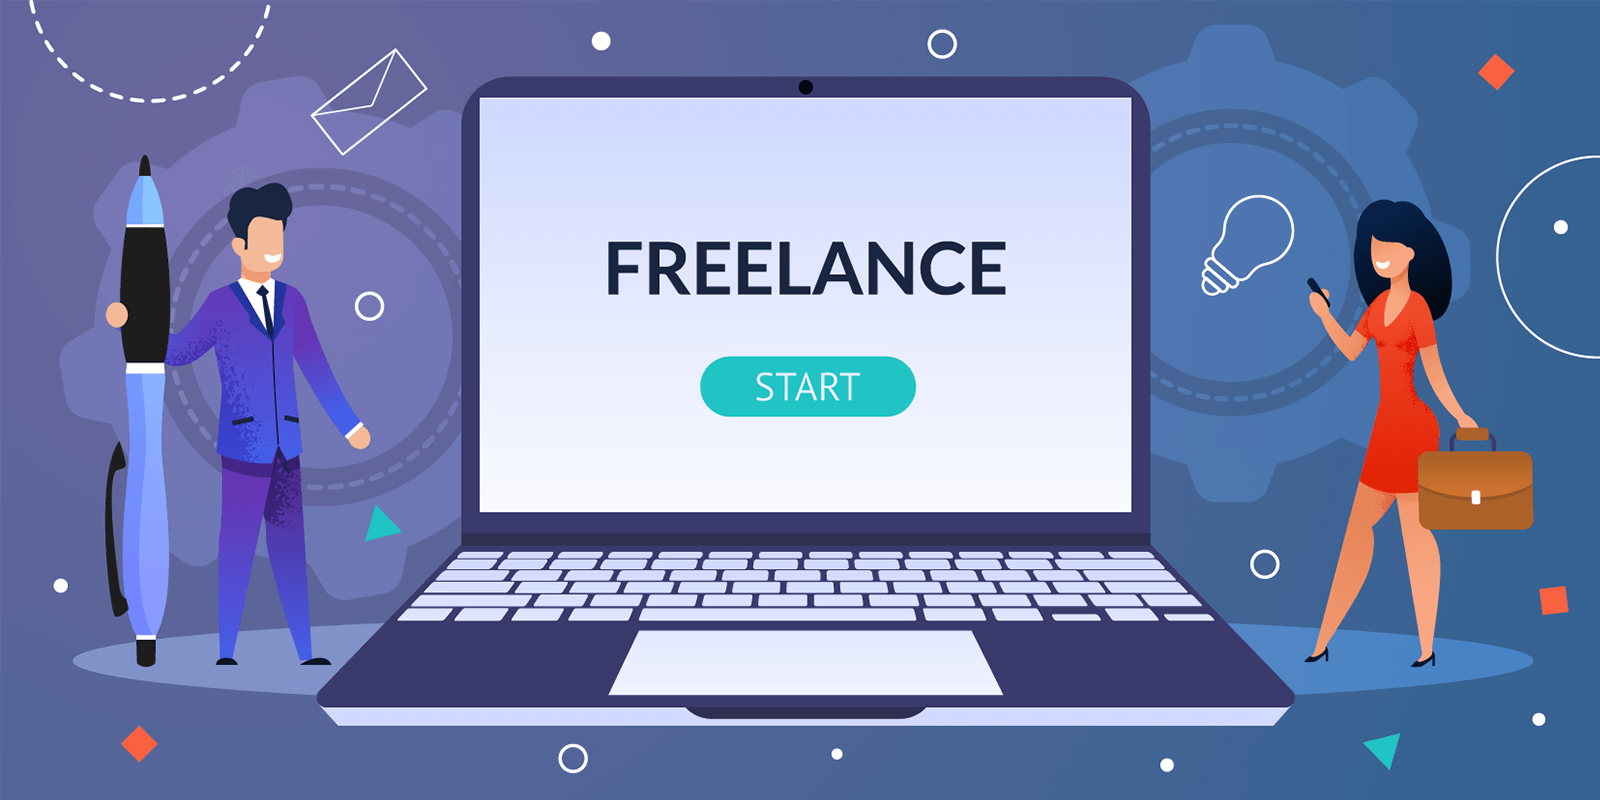 25 Companies That Hire for Remote Freelance Jobs | FlexJobs